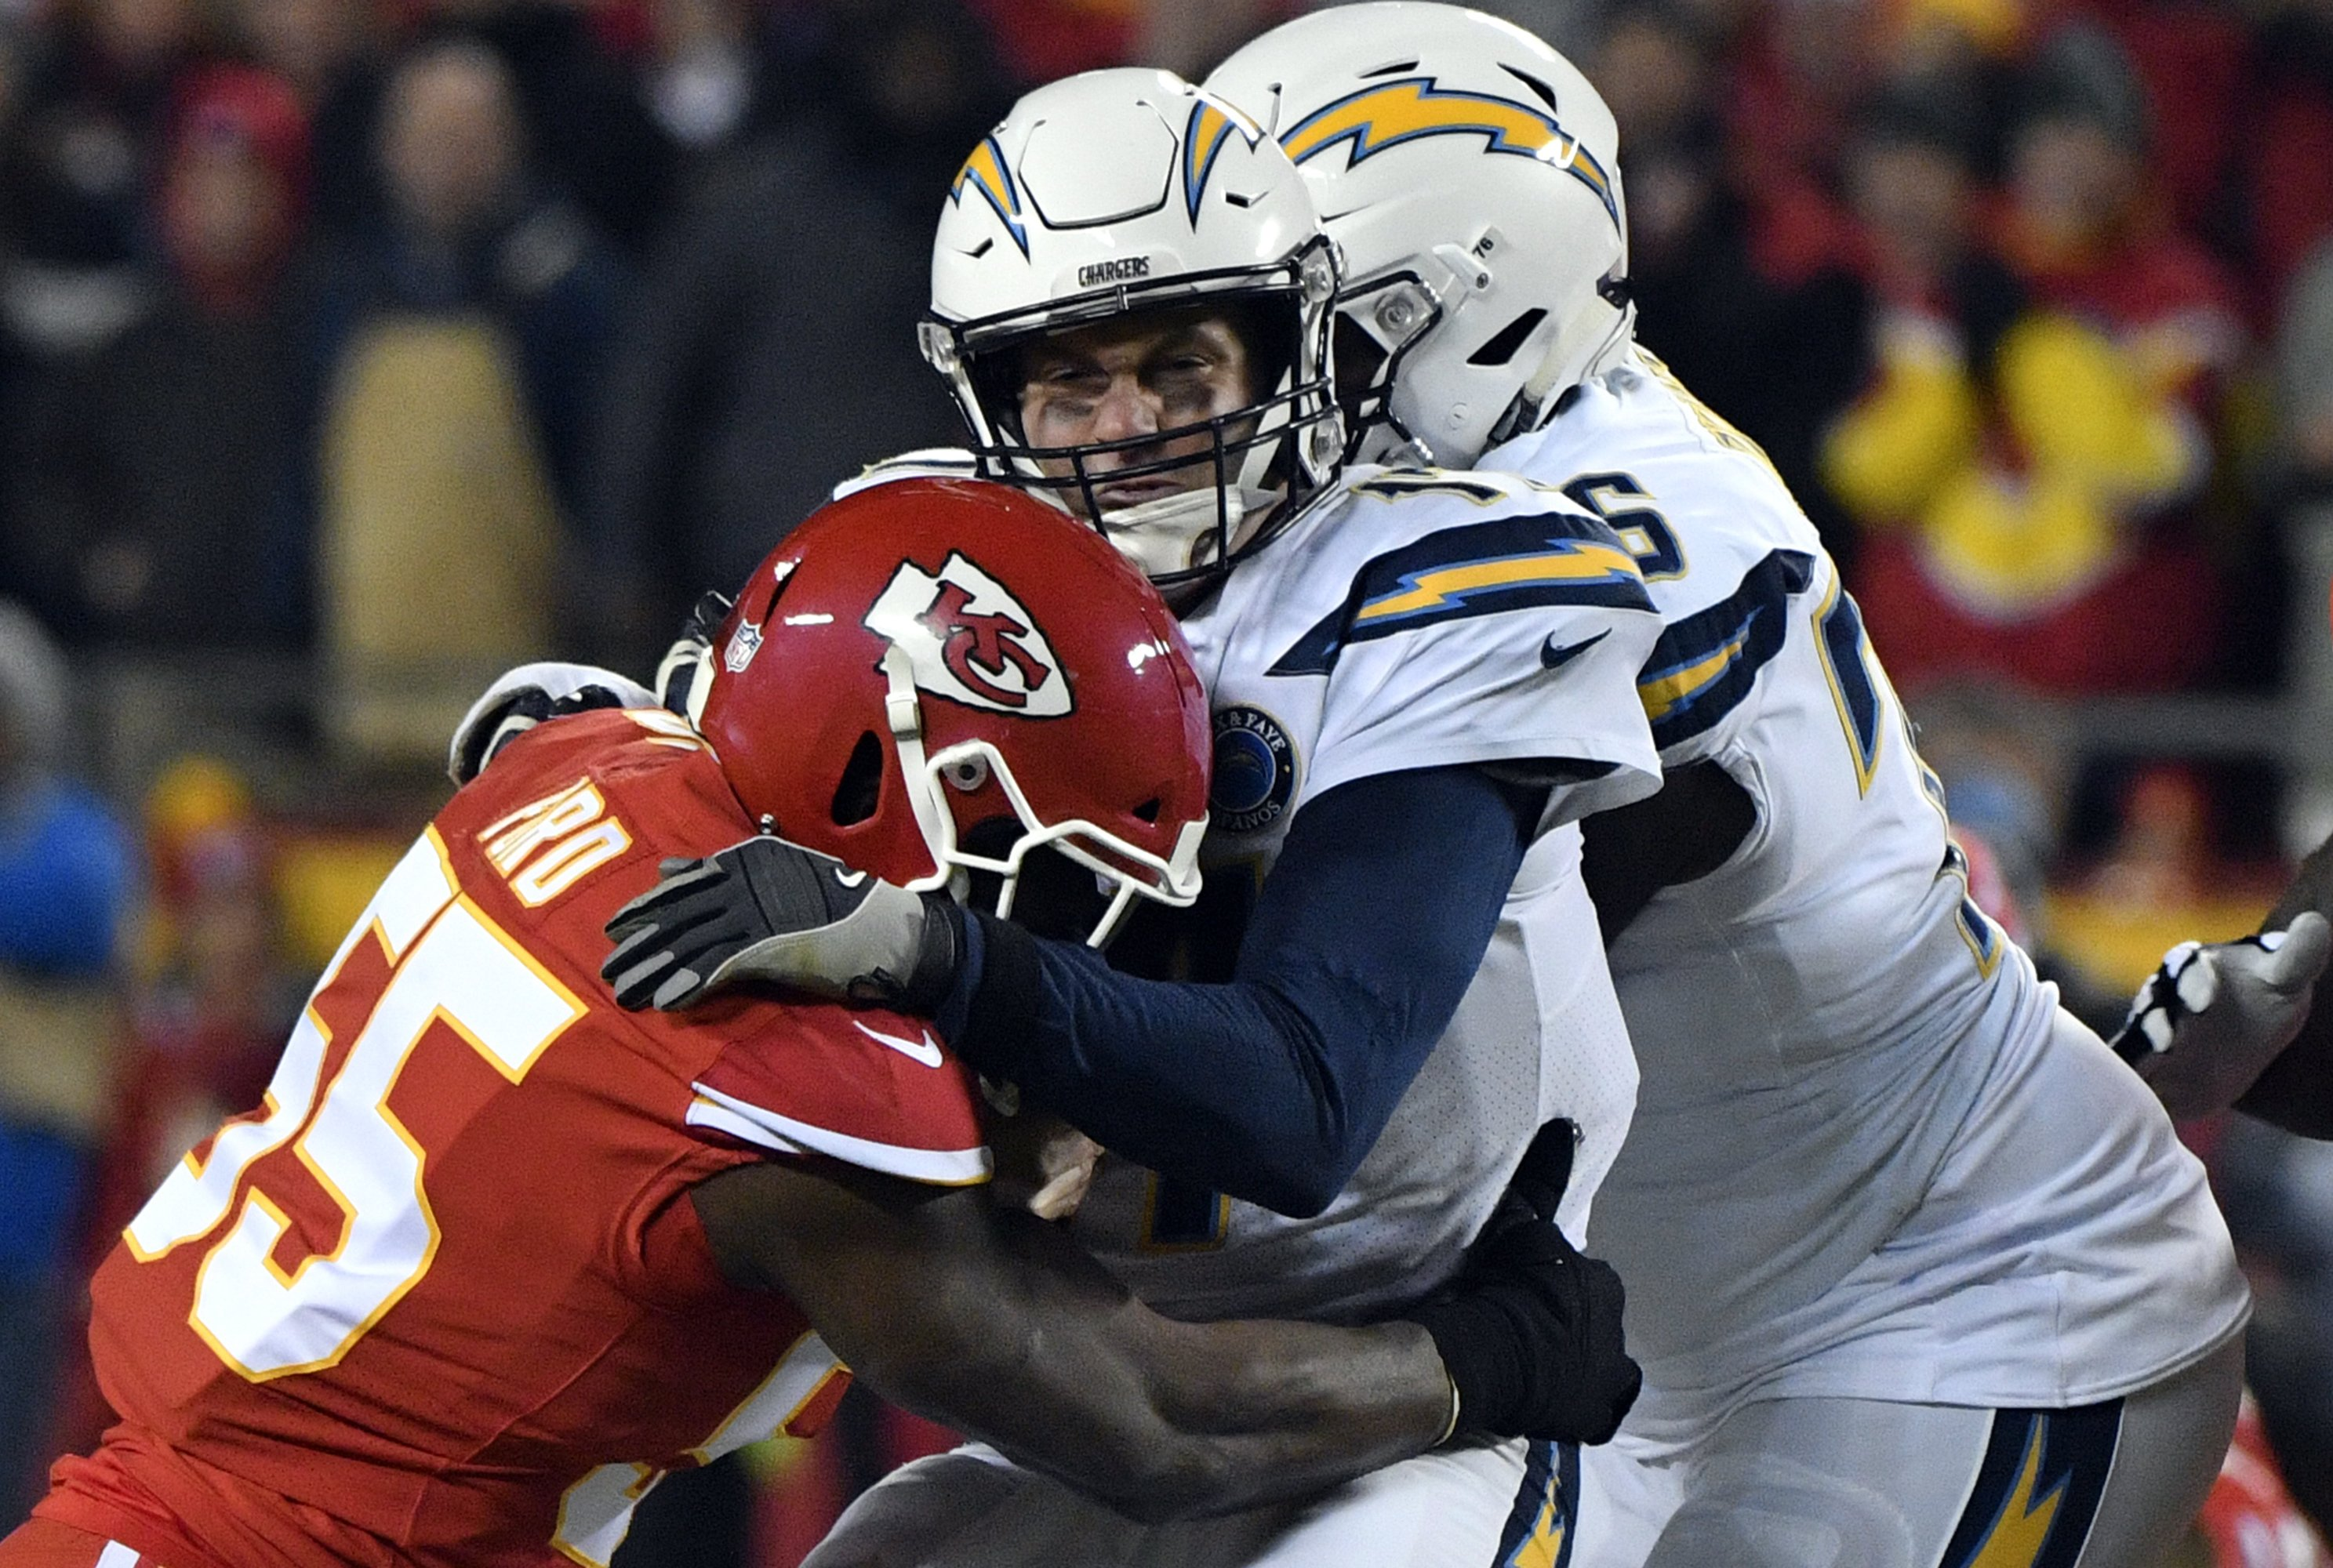 b0586d54 2019 NFL Schedule Release: Win-Loss Predictions for Every Team ...